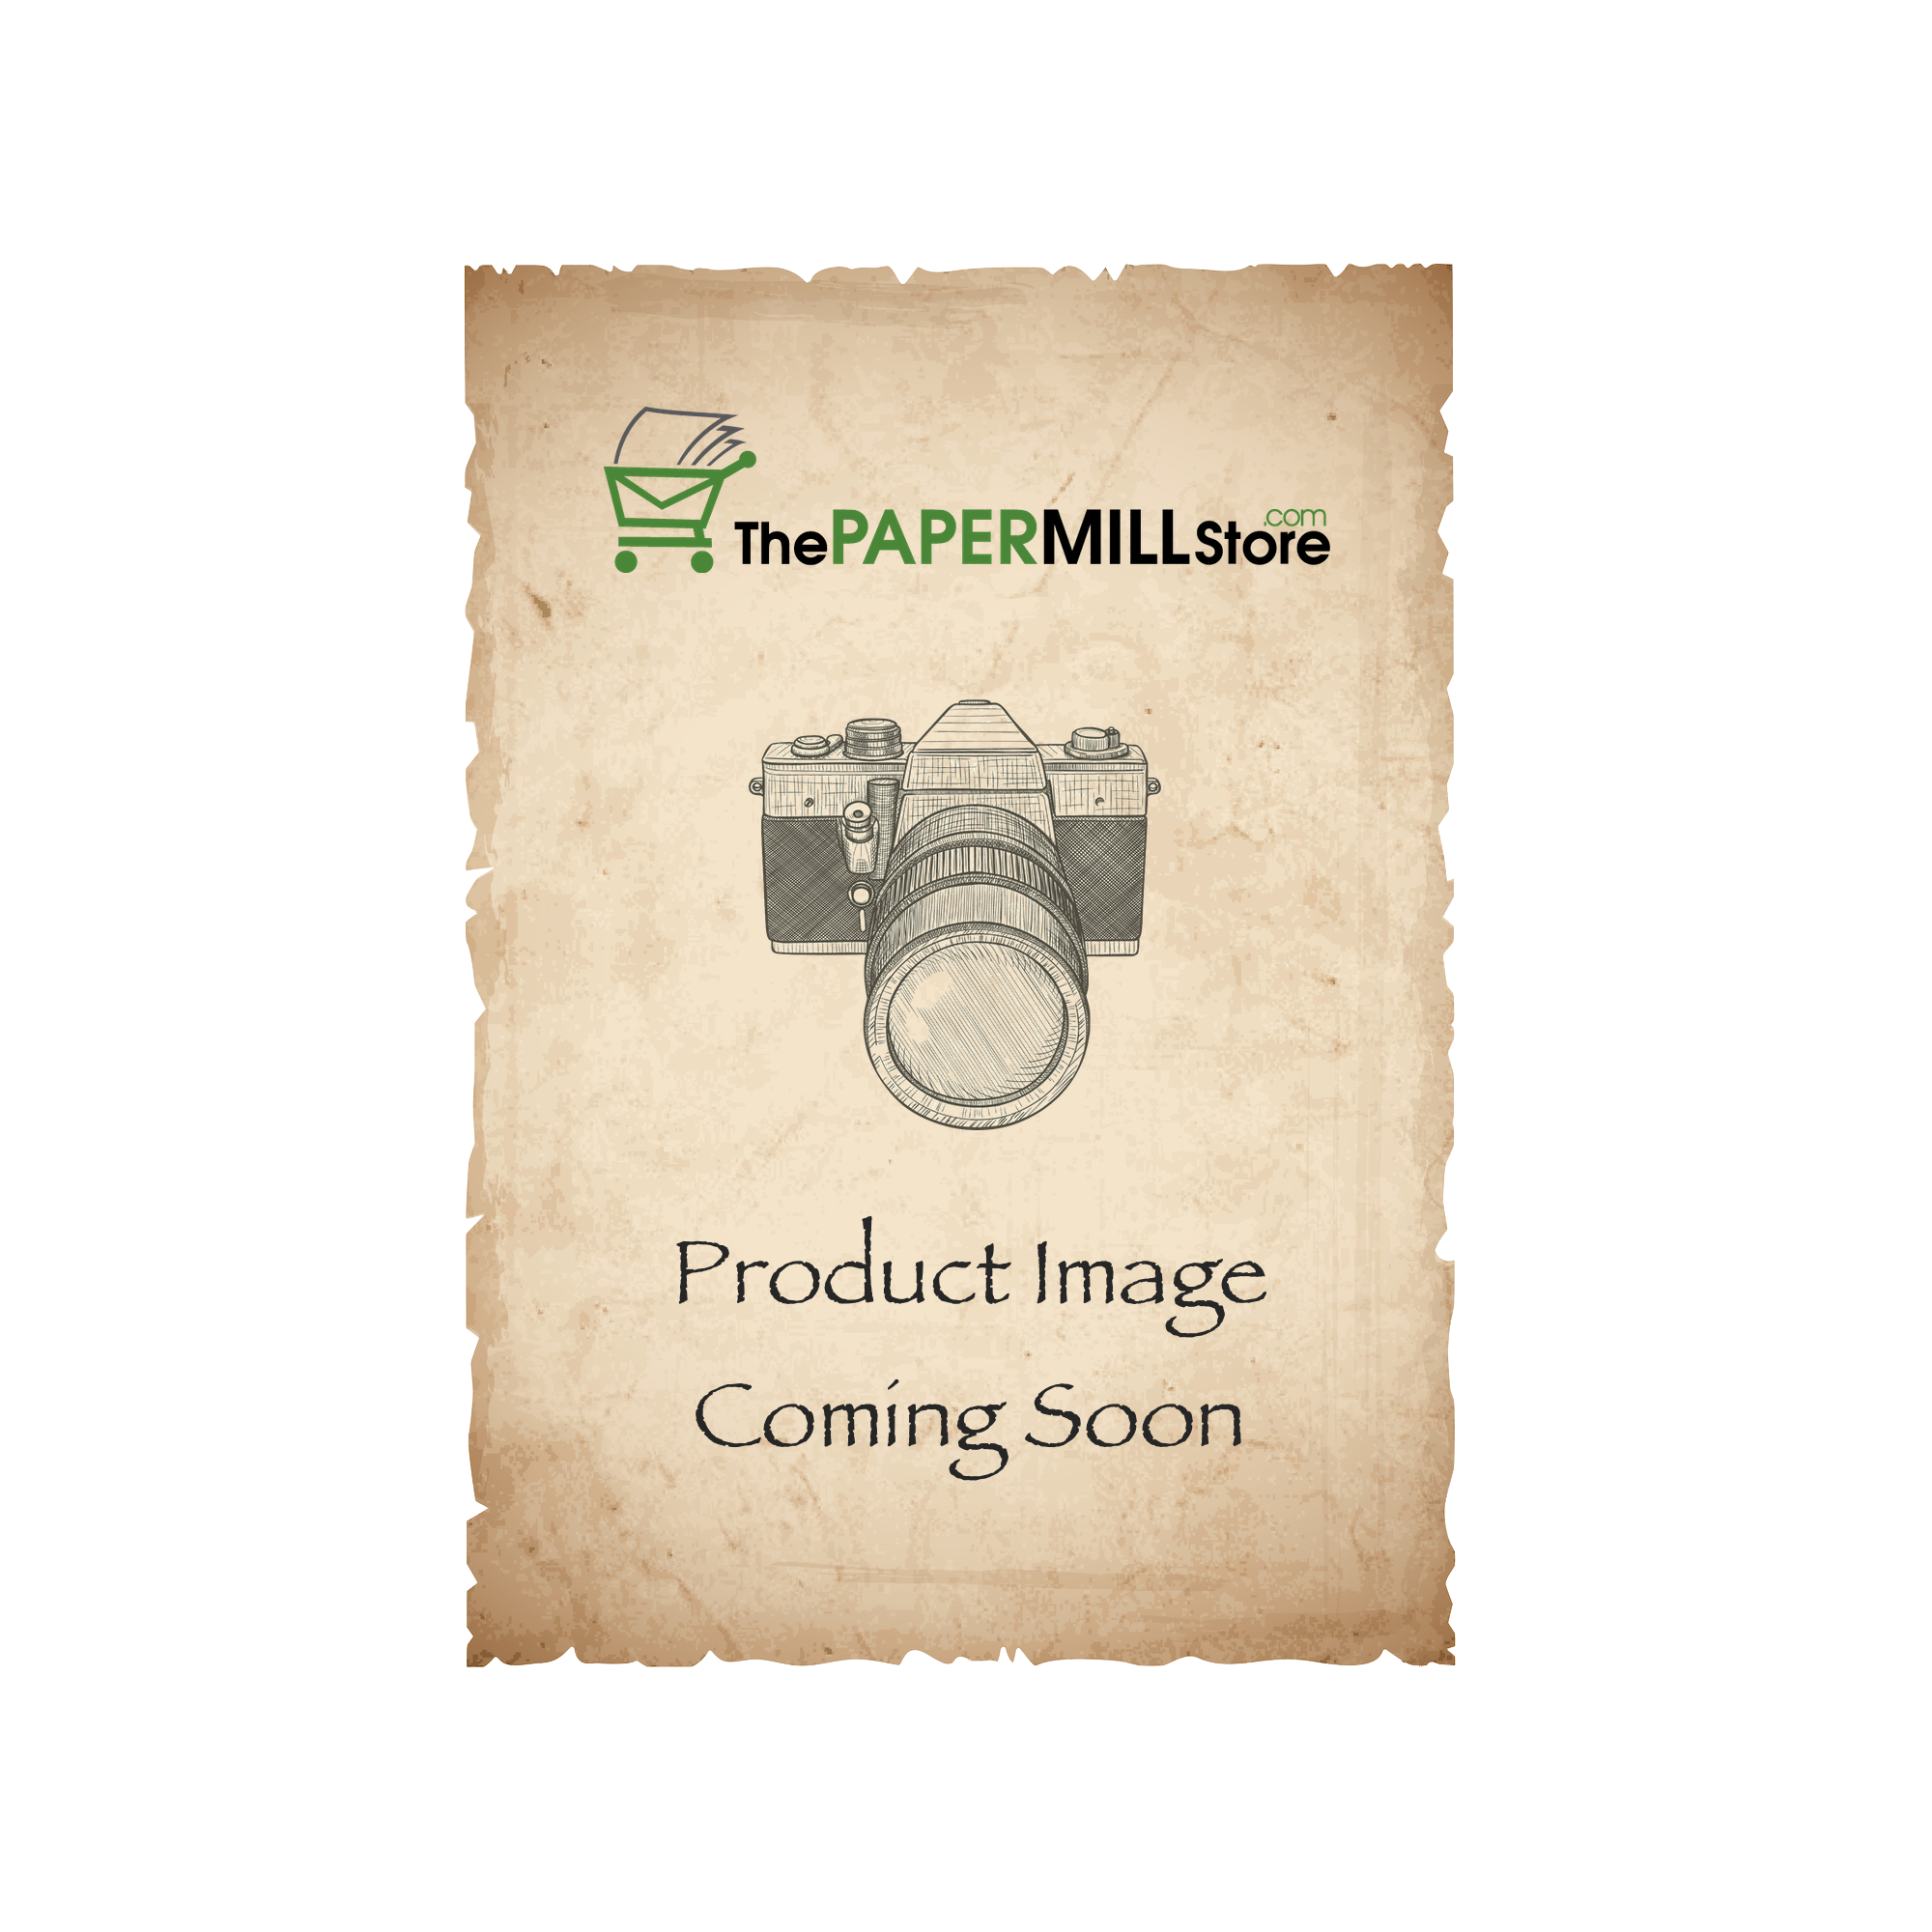 Loop Inxwell i-Tone Eco Cream Card Stock - 18 x 12 in 80 lb Cover Vellum  100% Recycled 500 per Carton